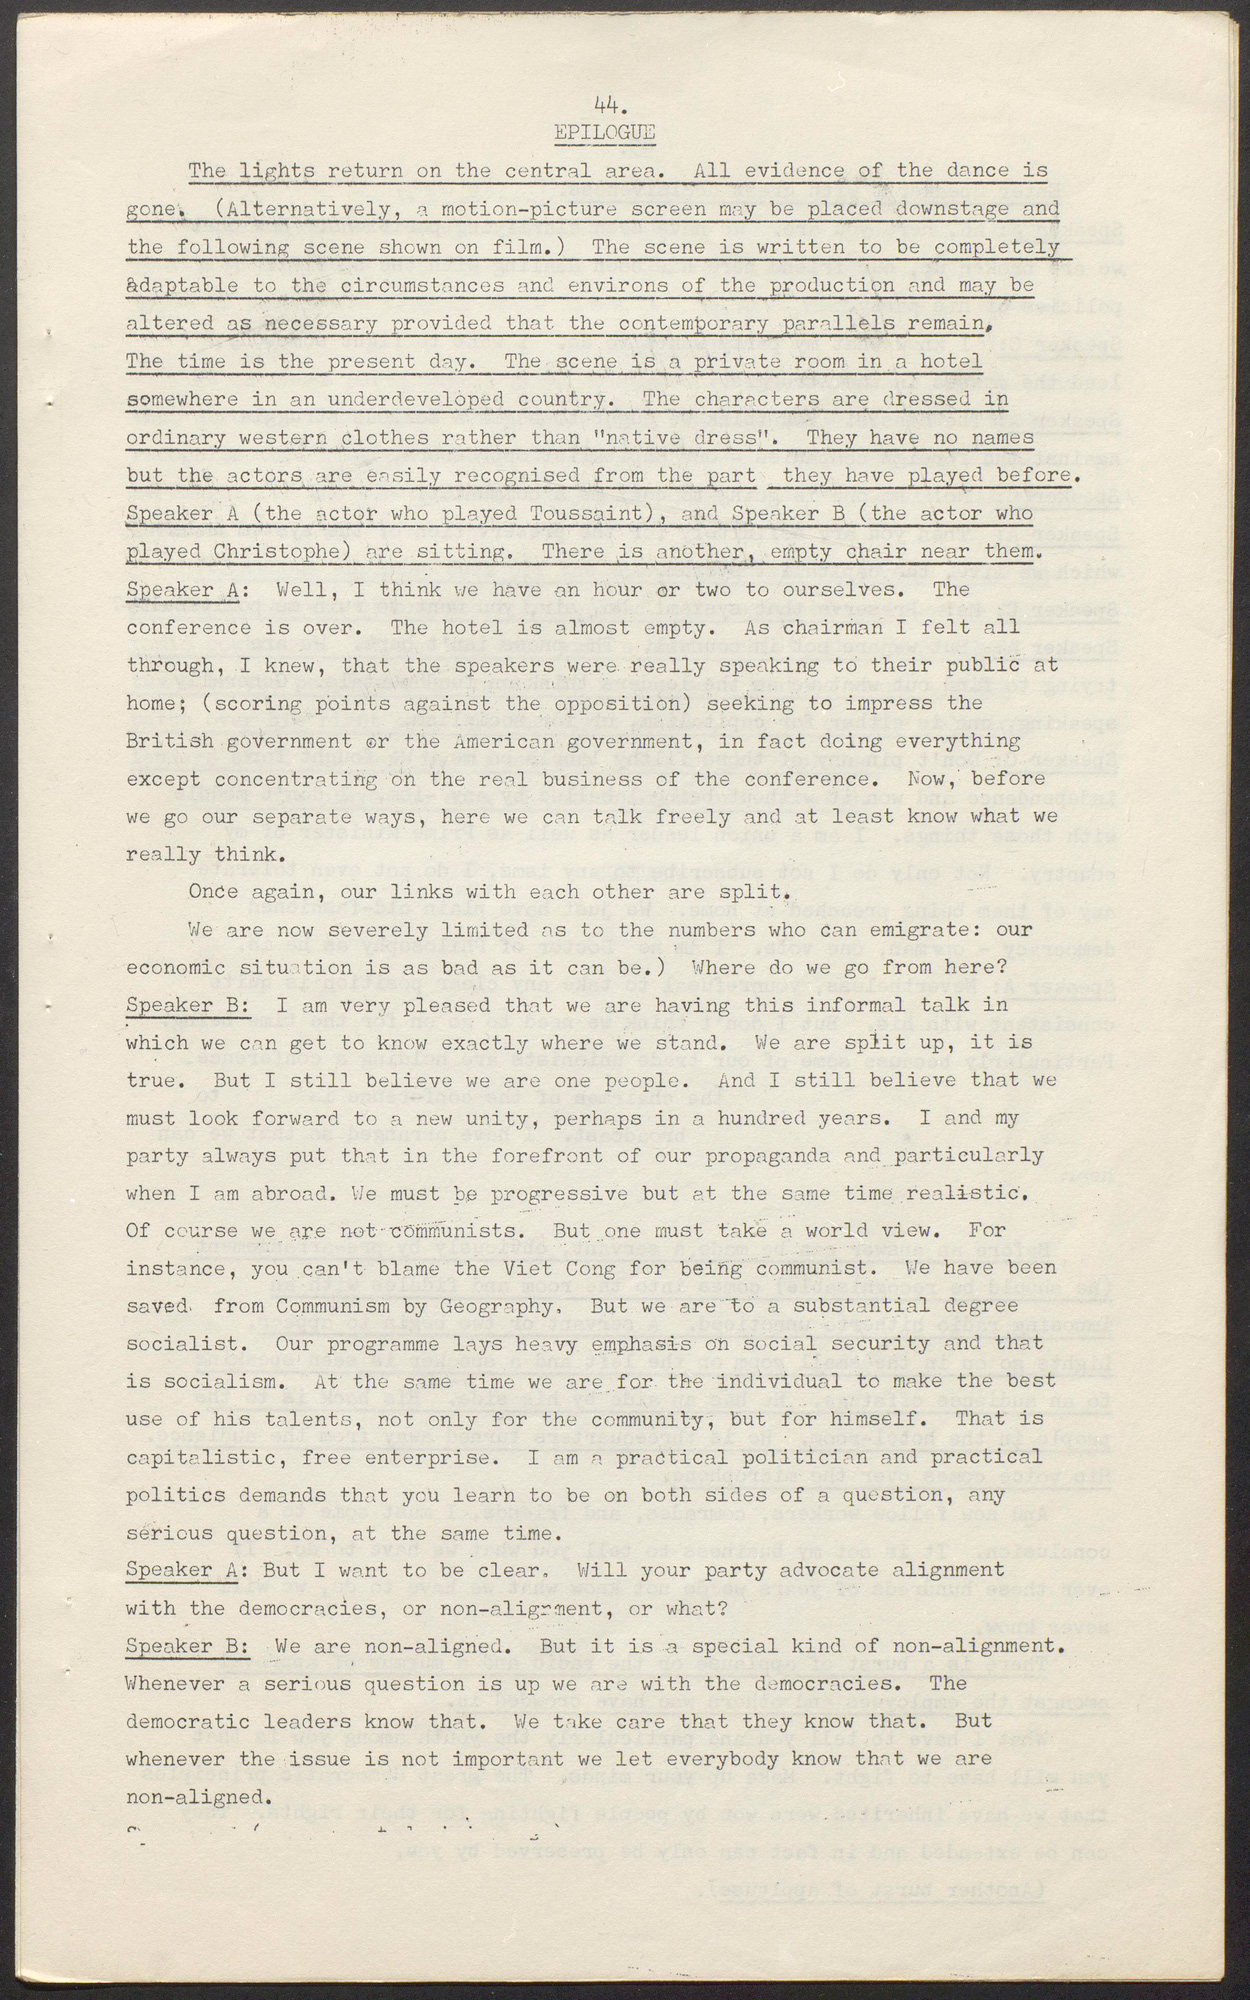 Page 44, first page of the epilogue from a typescript of The Black Jacobins play by C L R James, 1967, containing stage directions and dialogue between Speaker A and Speaker B